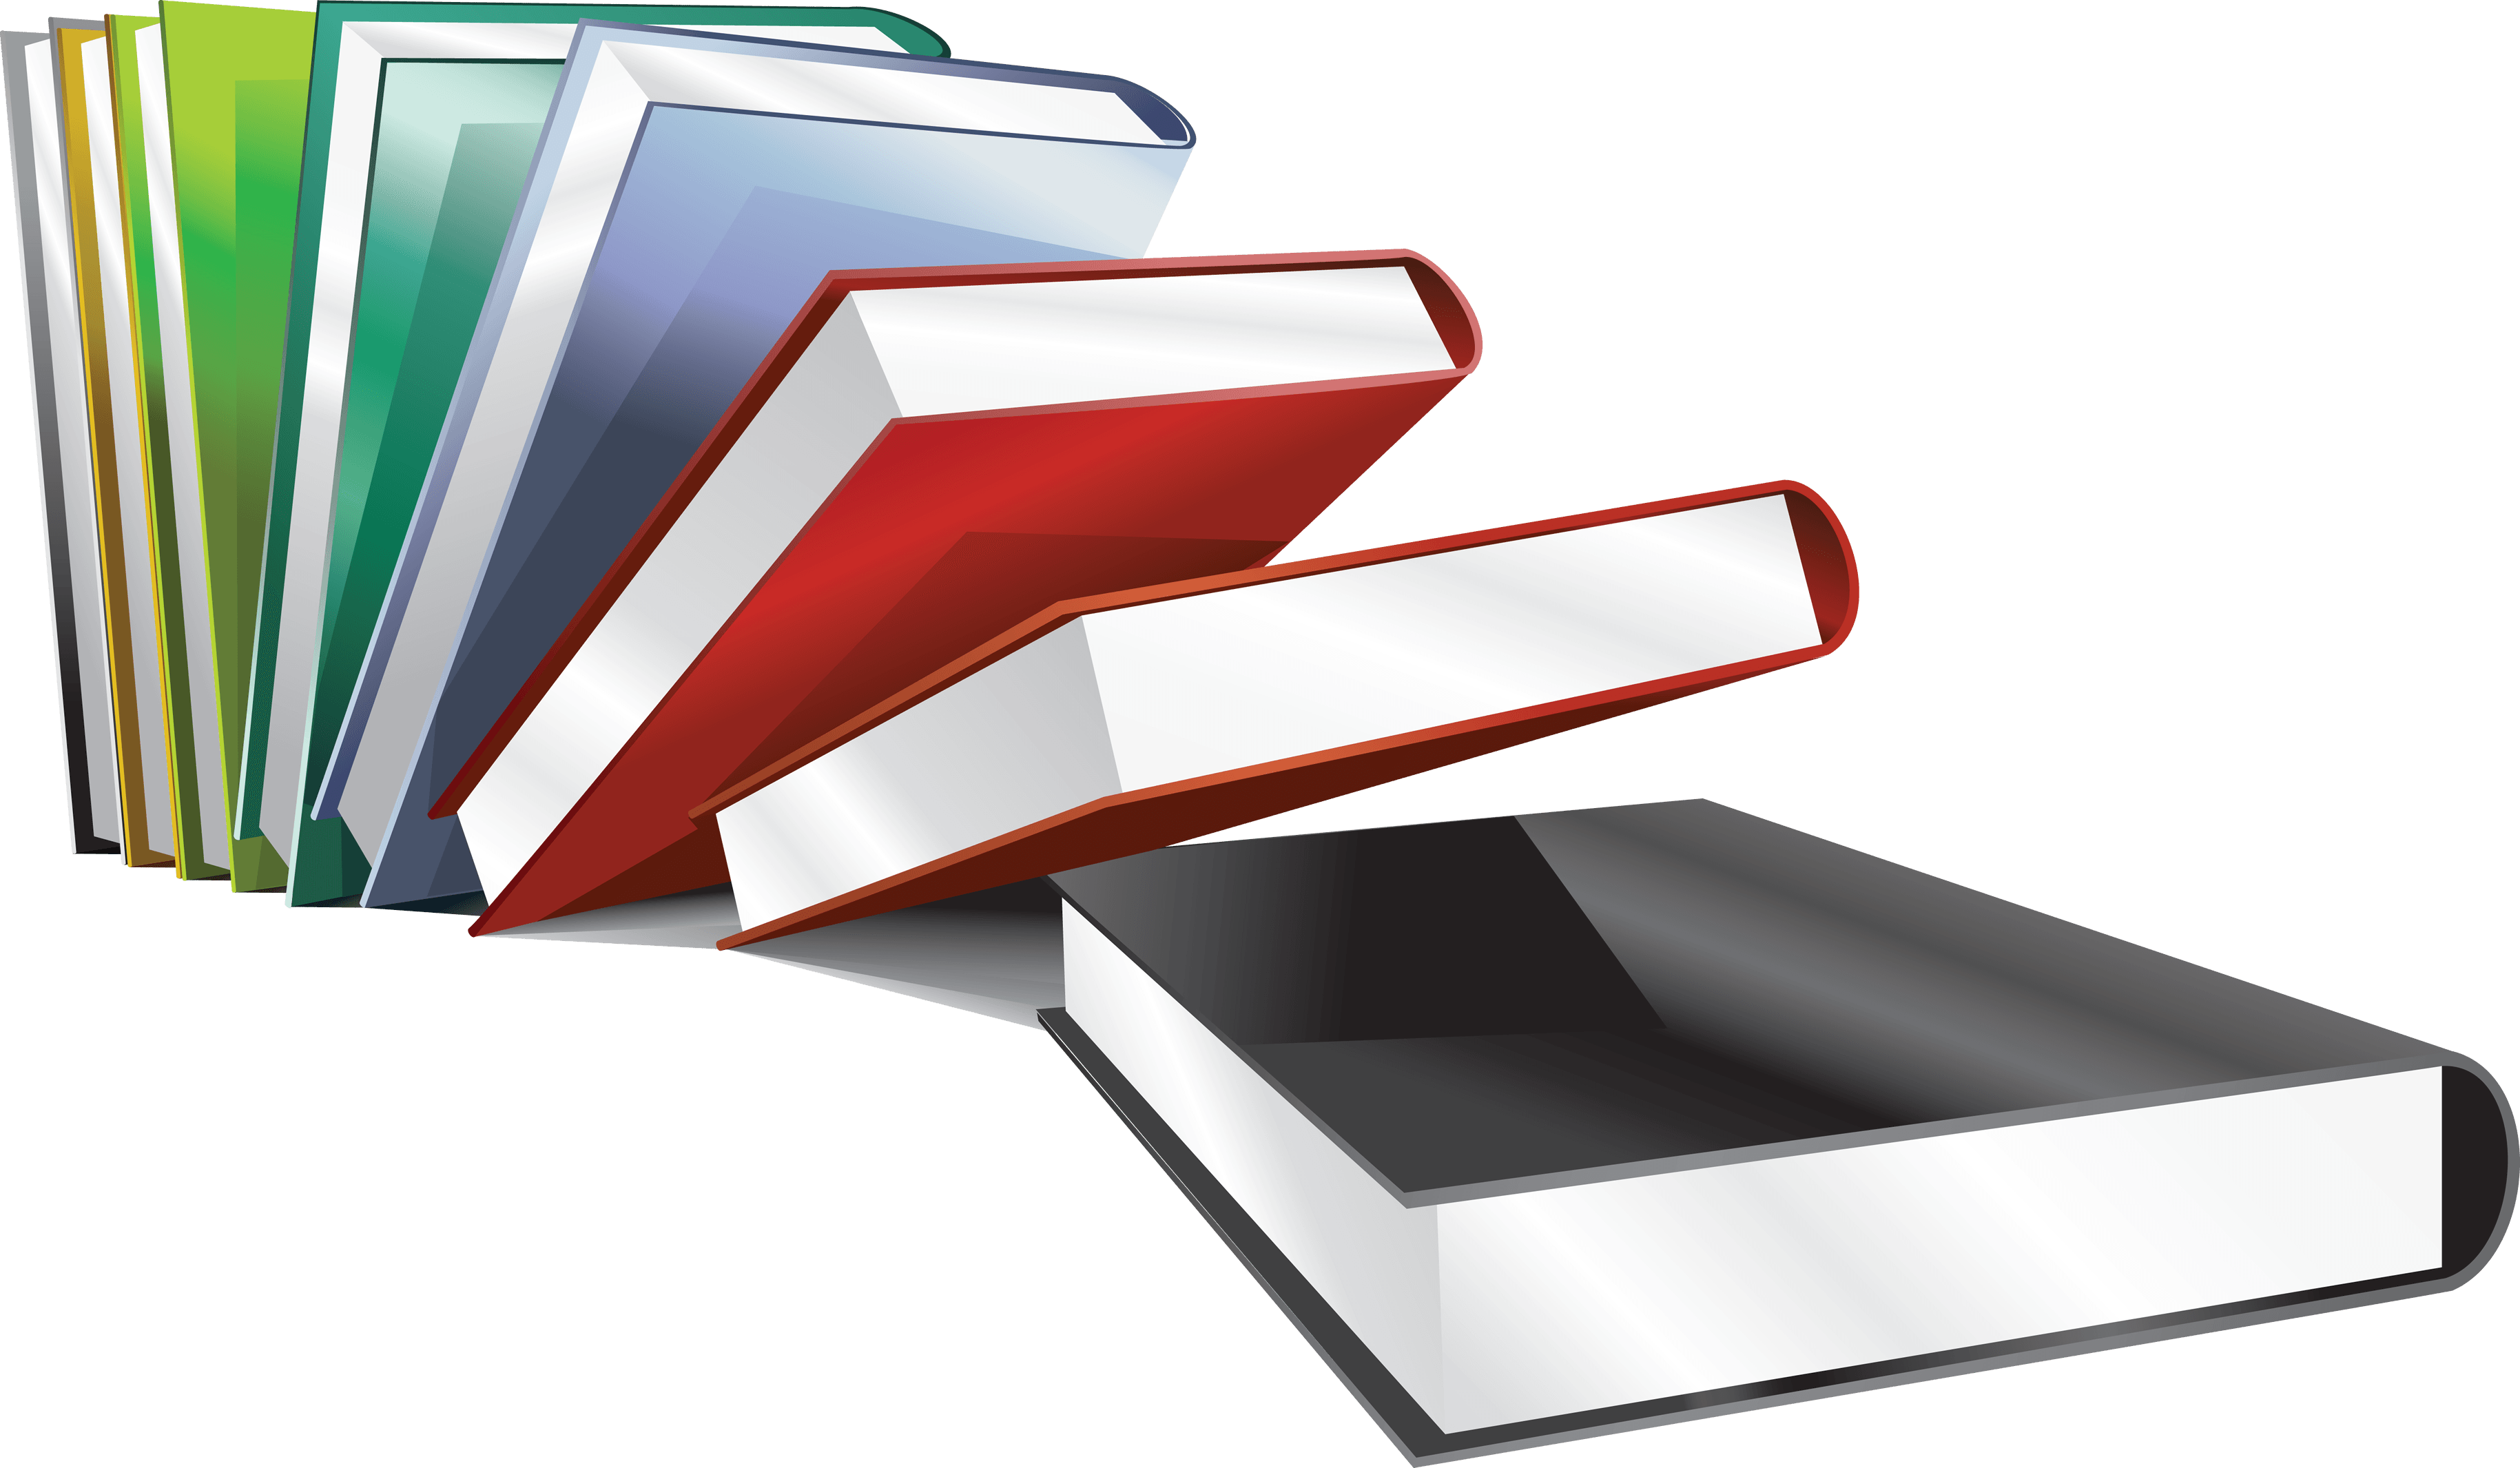 Coorful Books Transparent PNG Images